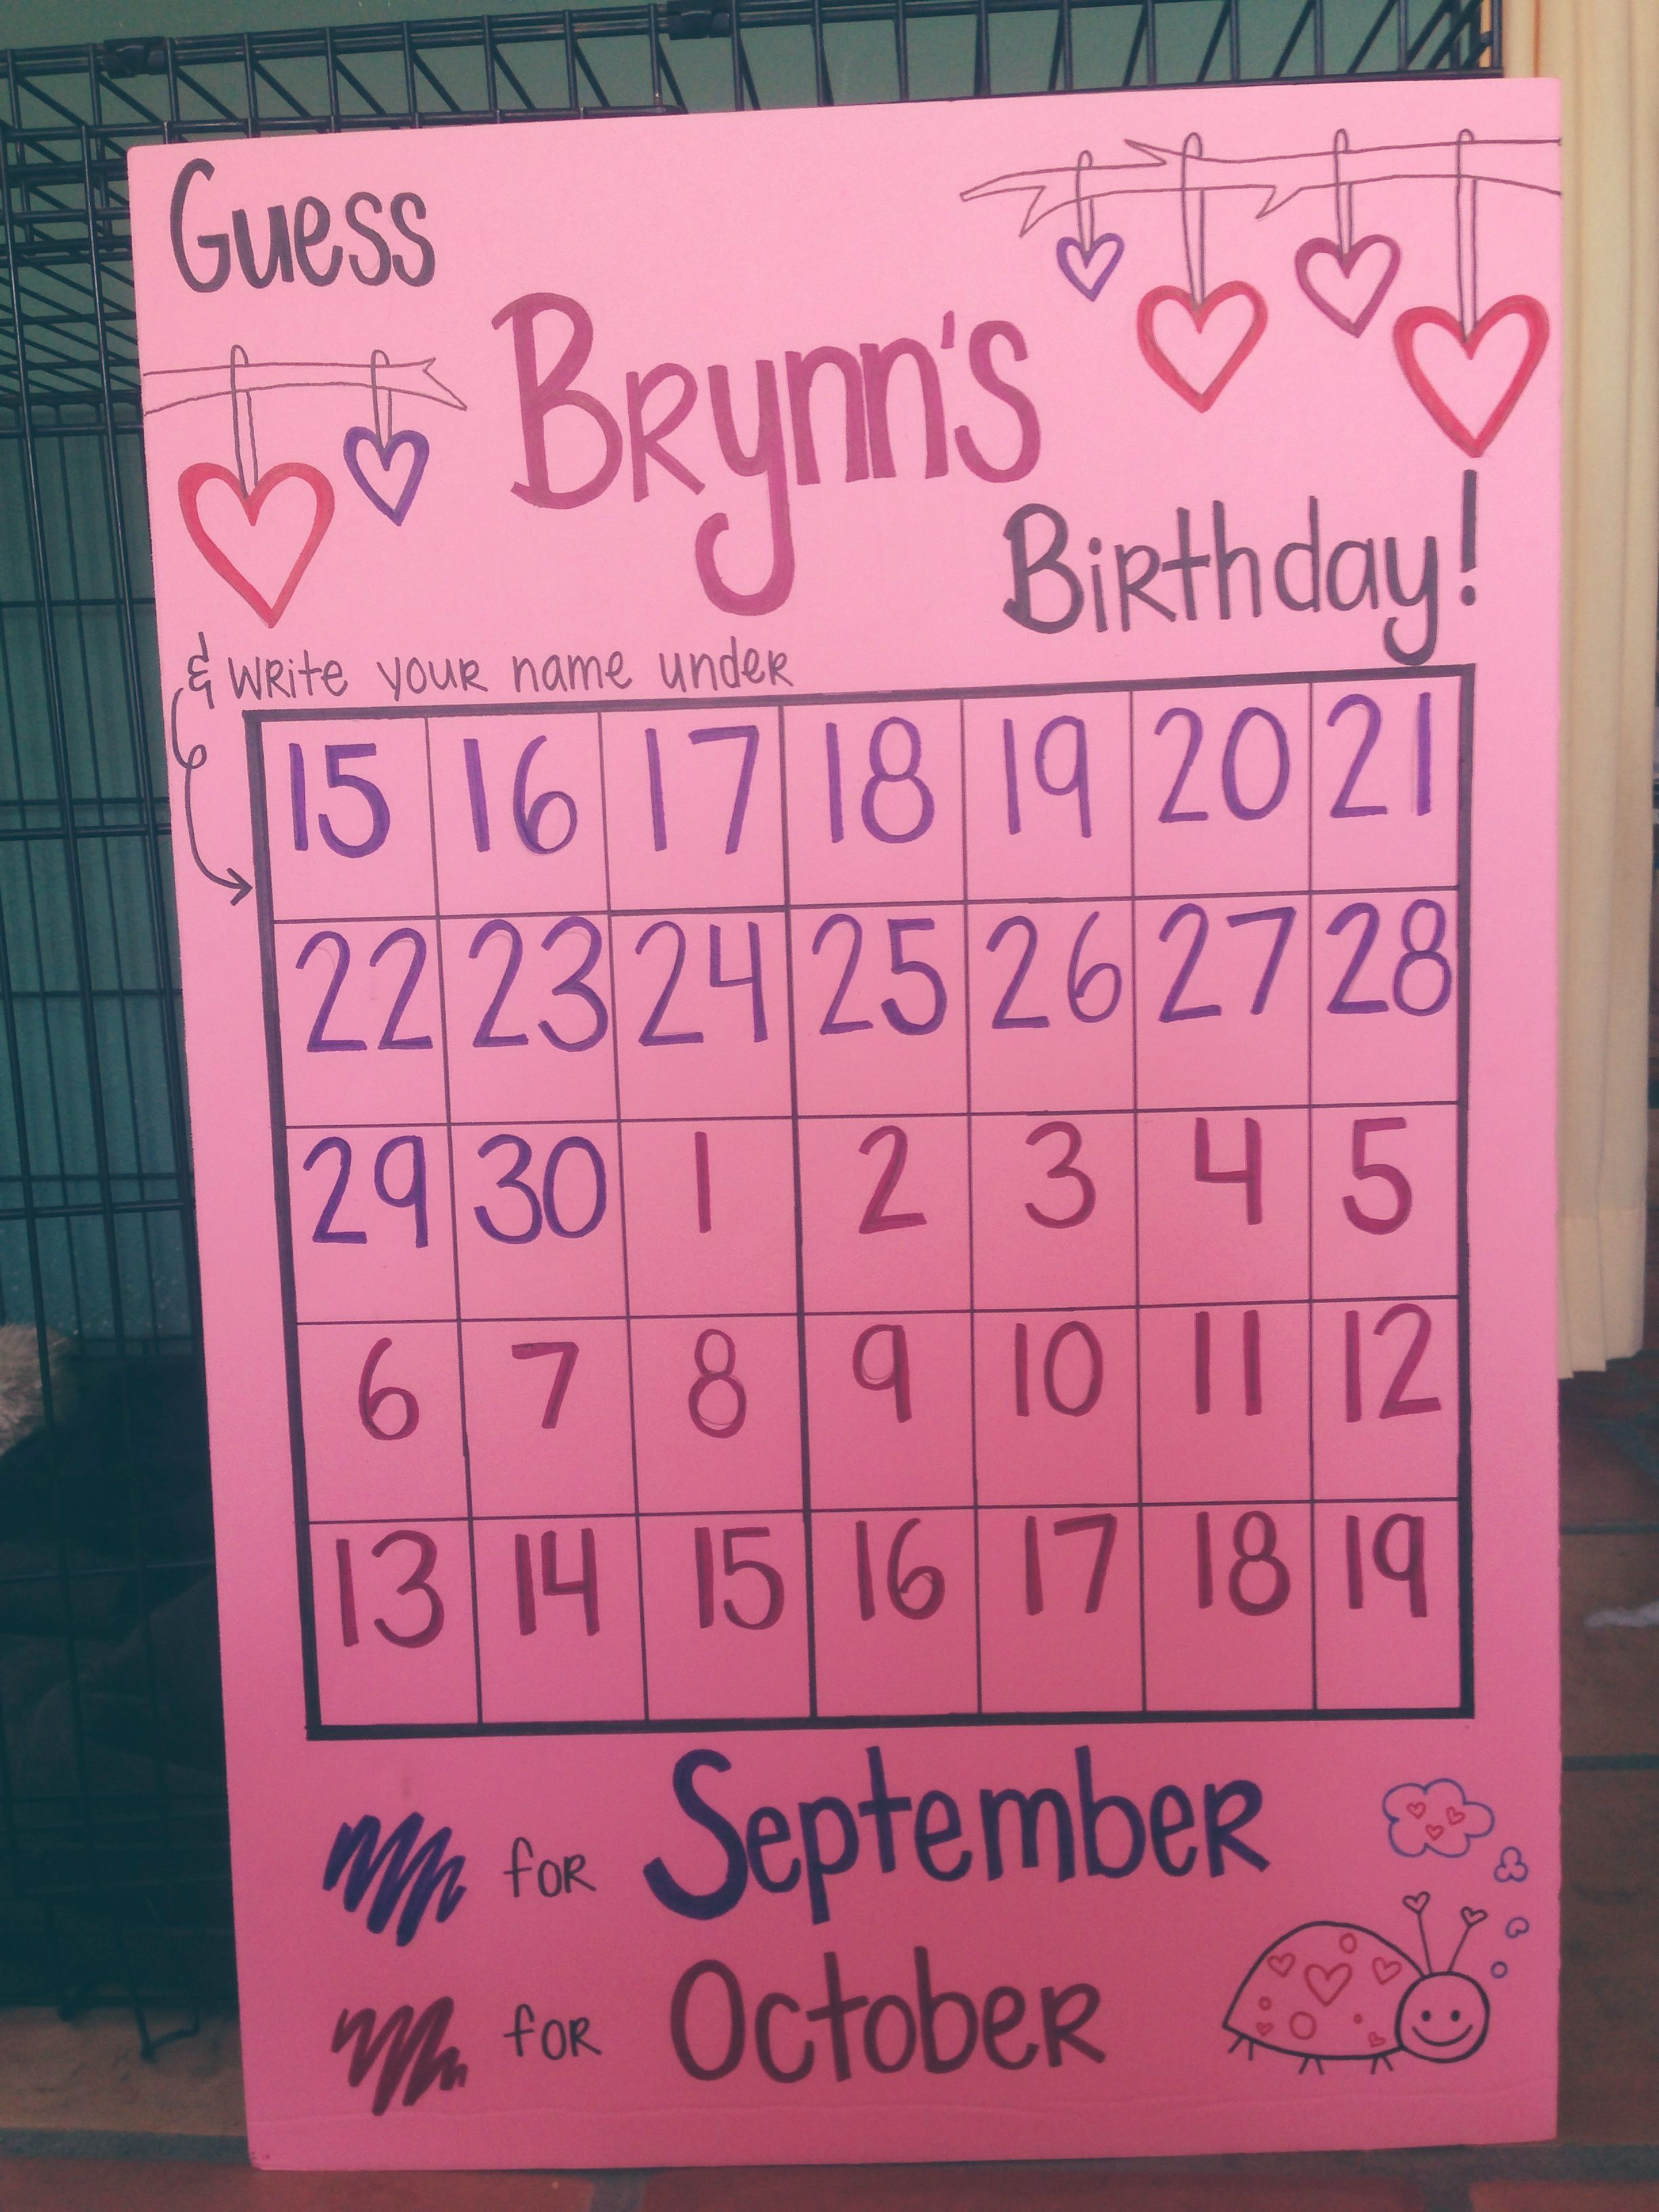 Baby Shower Ideas Without Games baby shower birthday guessing game this would be an easy game to do